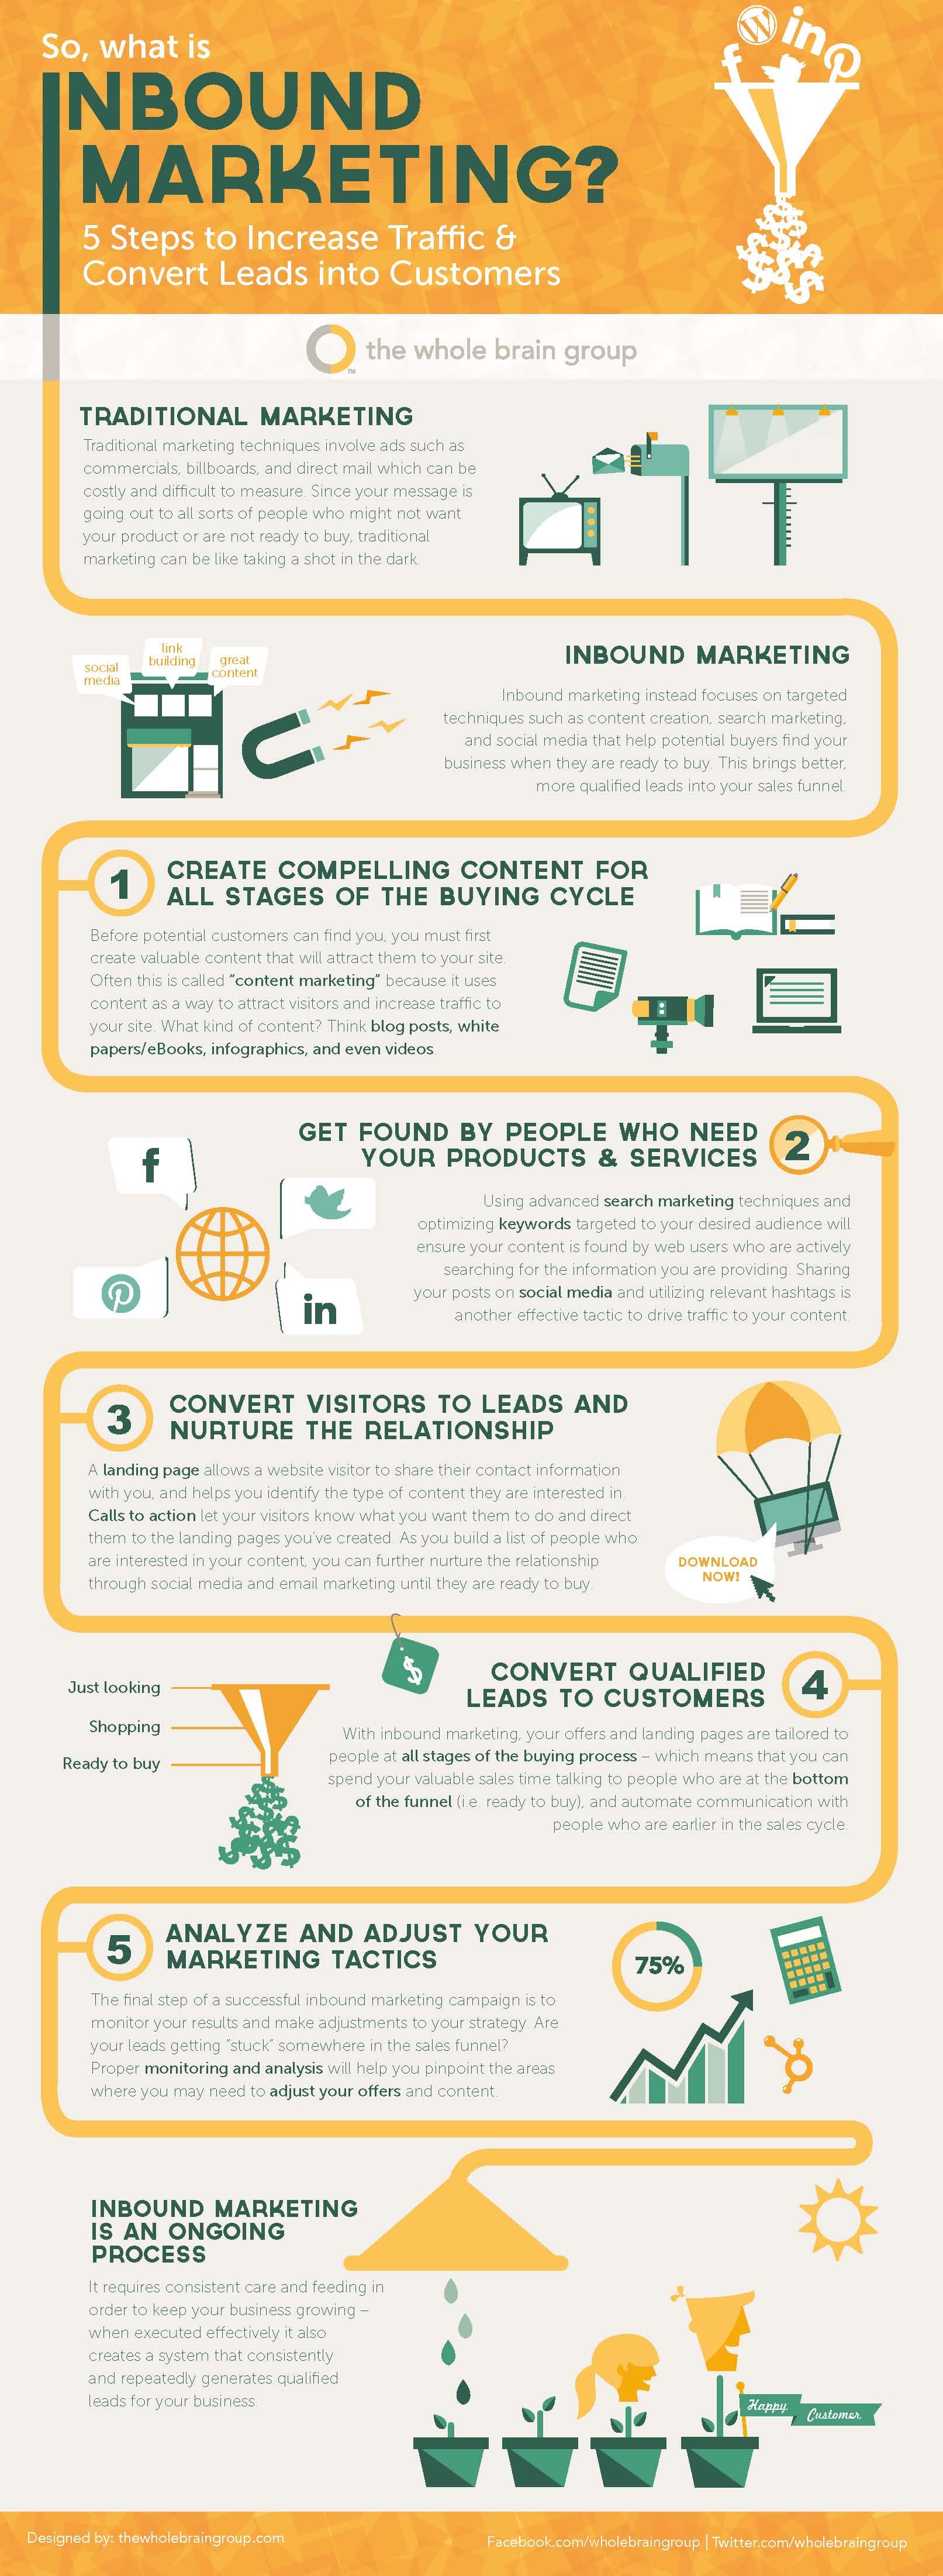 So-What-Is-Inbound-Marketing-Infographic